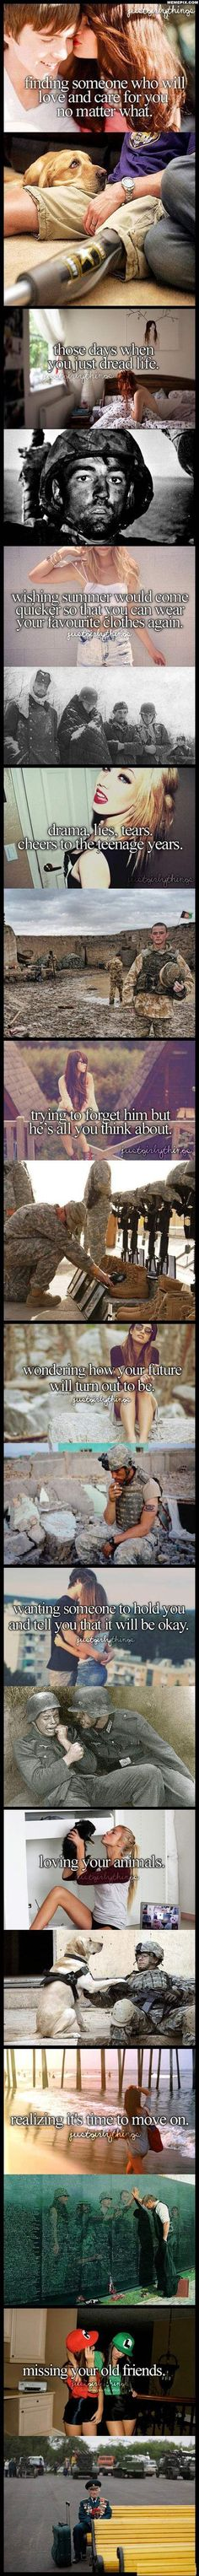 Teenagers today don't realize how stupid they look sometimes. There are whole other generations who sacrificed so much, and some who still are. Thank you for serving our country.